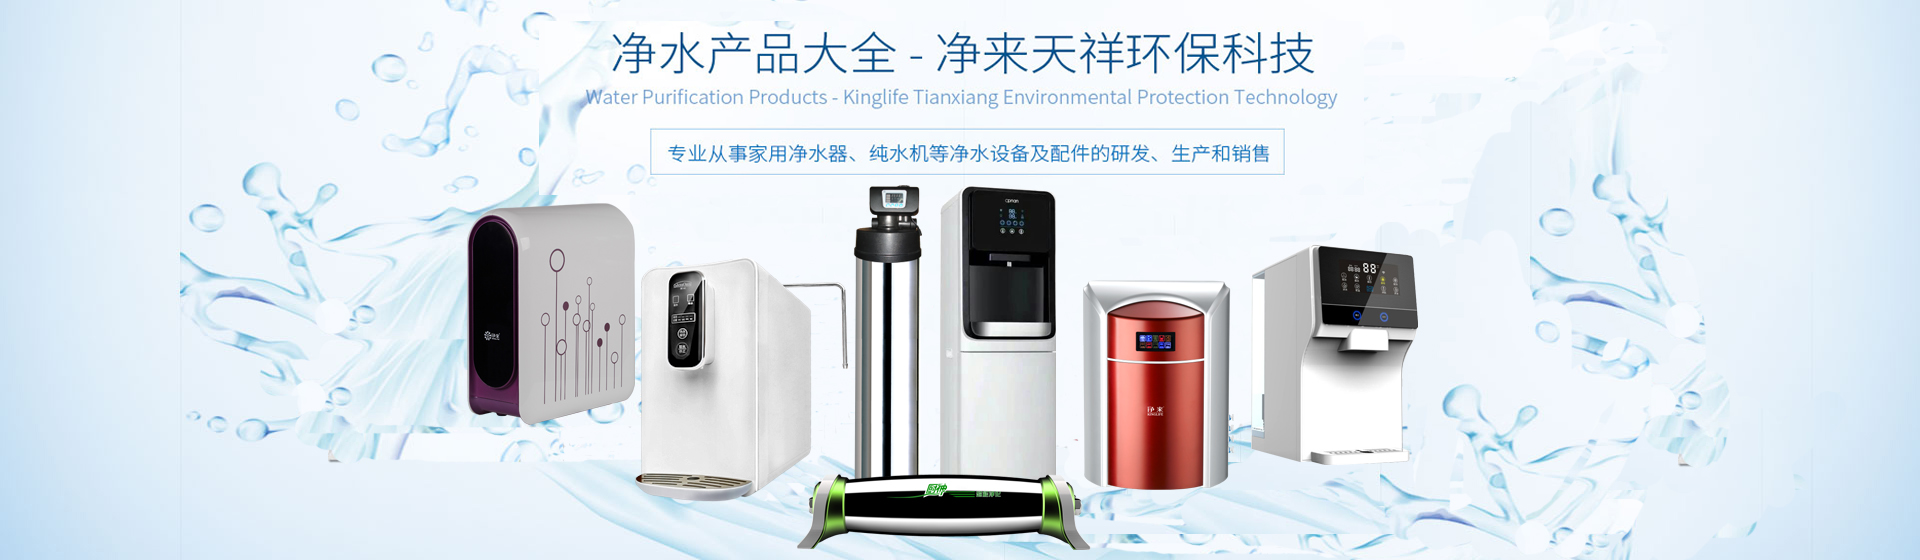 http://w2bx97.cn/product.html